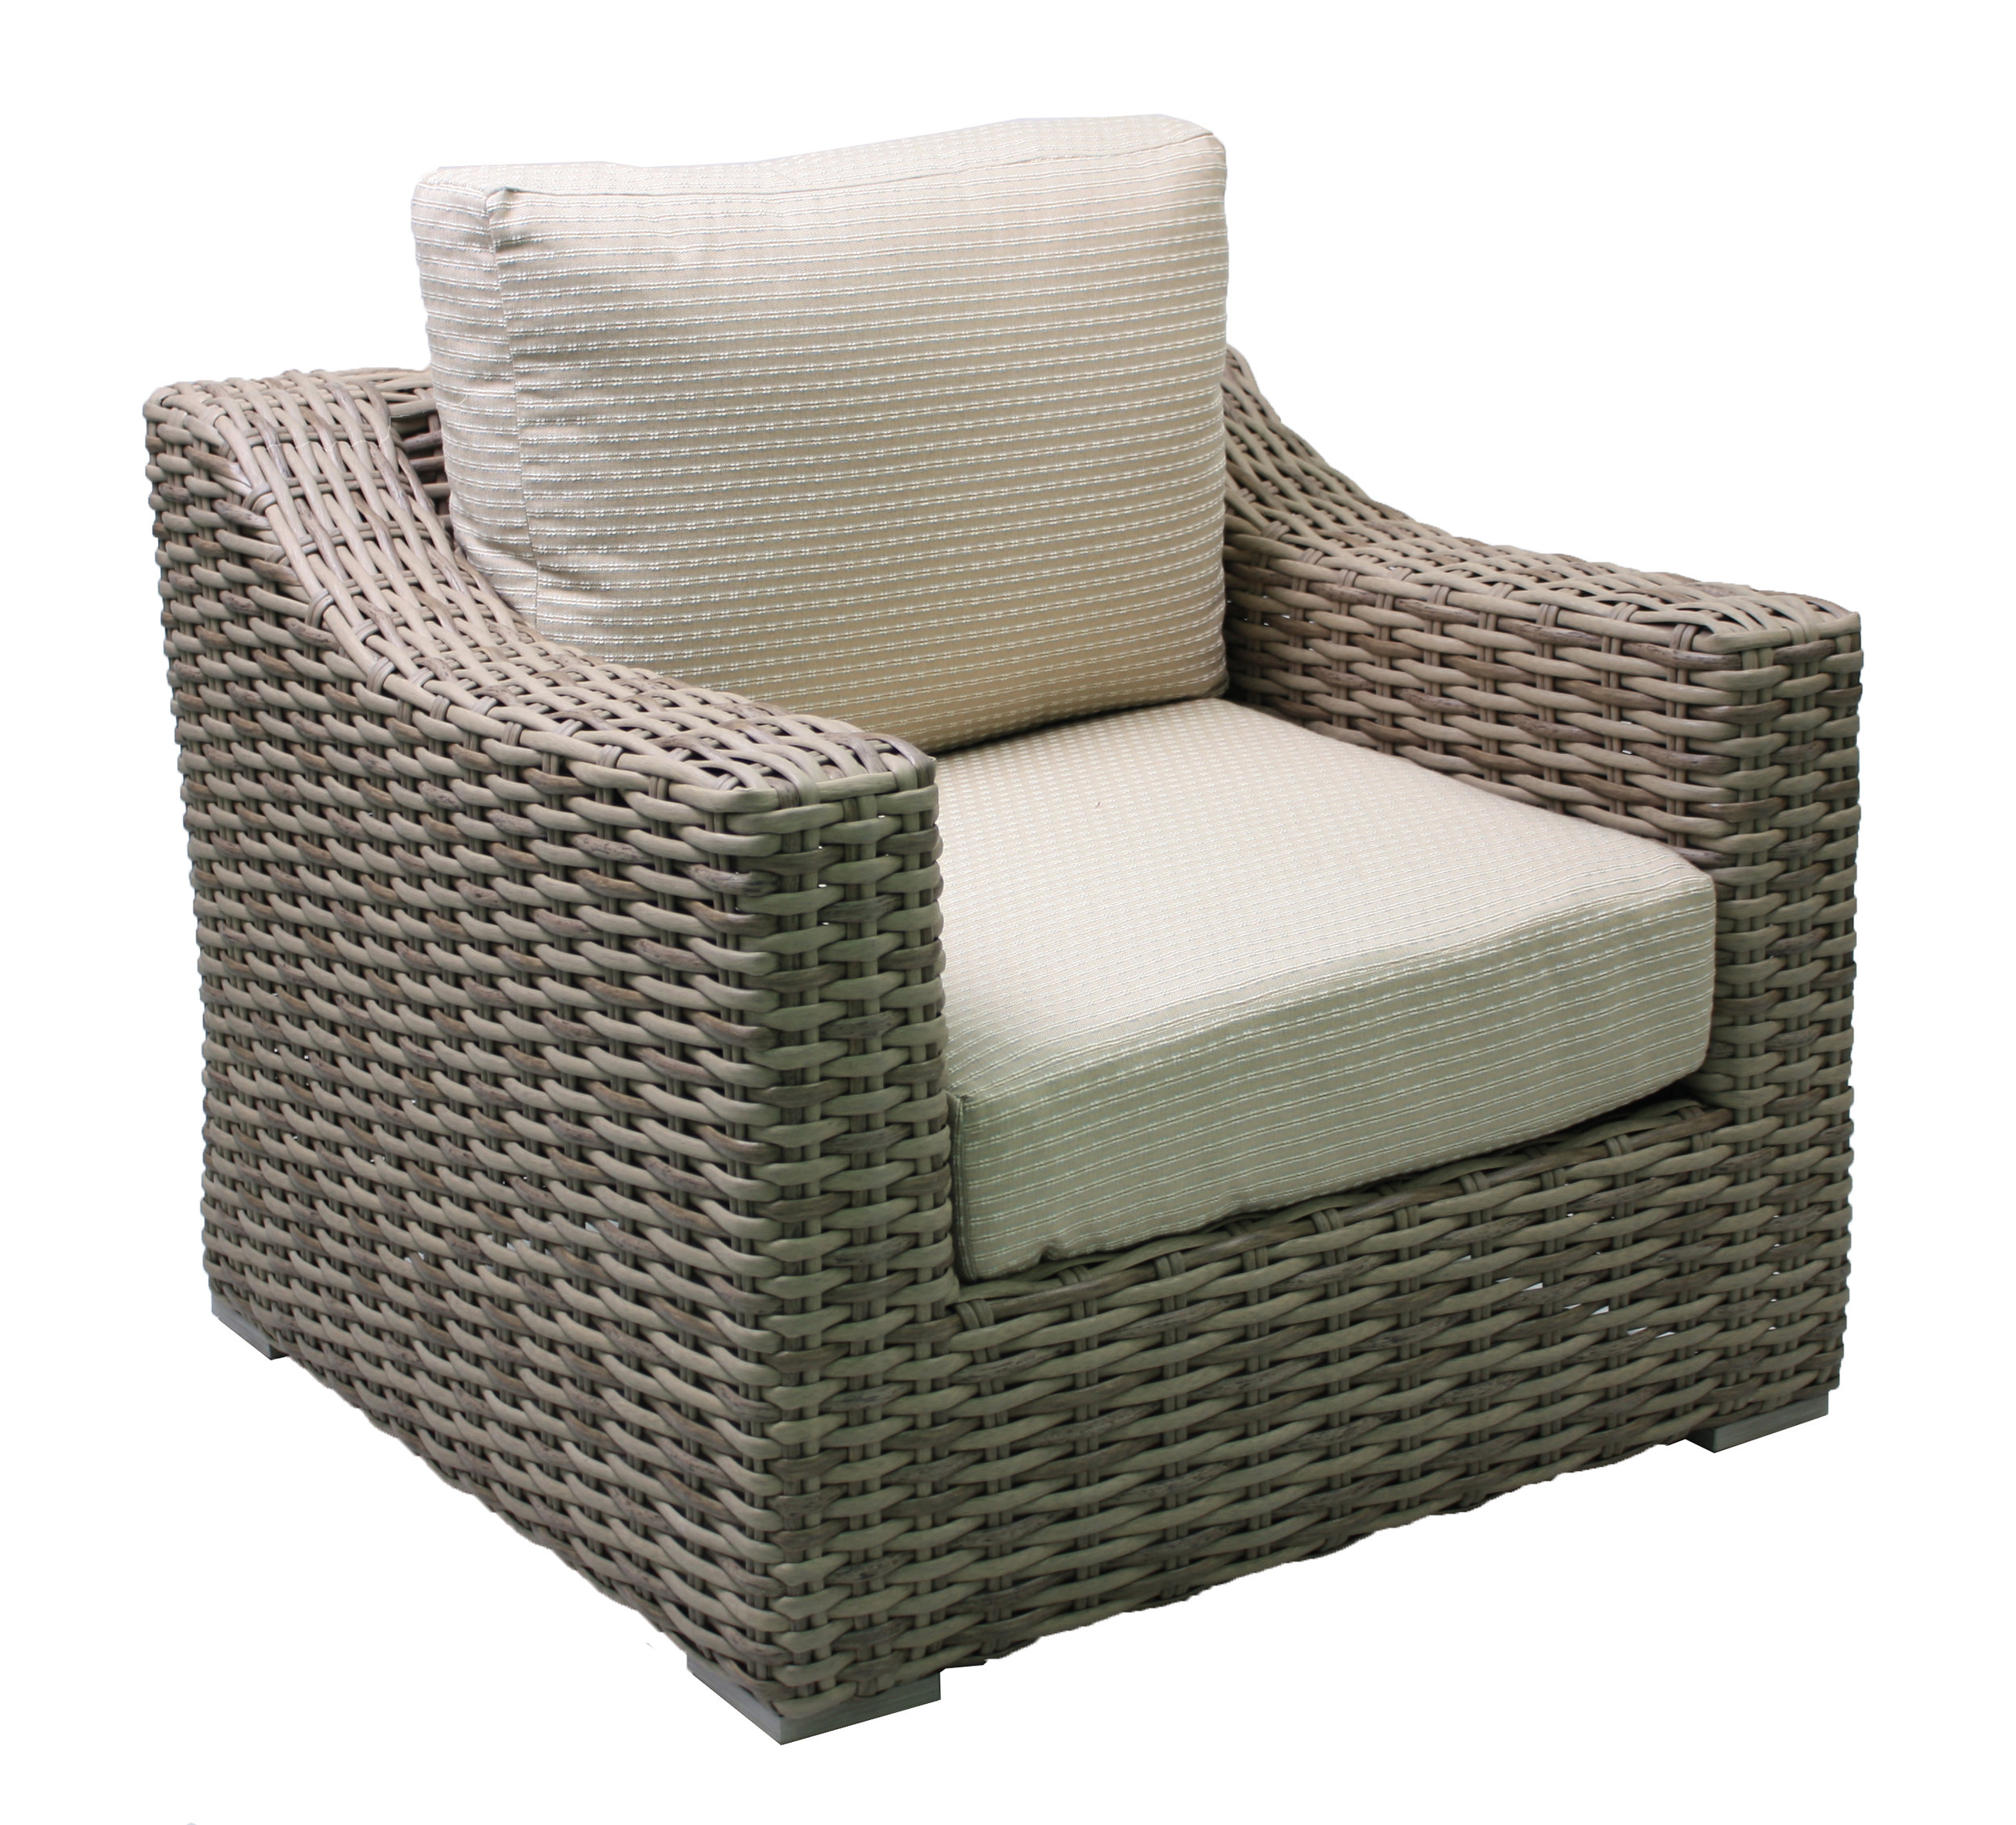 "957131 Sorrento Lounge Chair   37.6"" x 36.8"" x 30.5"""